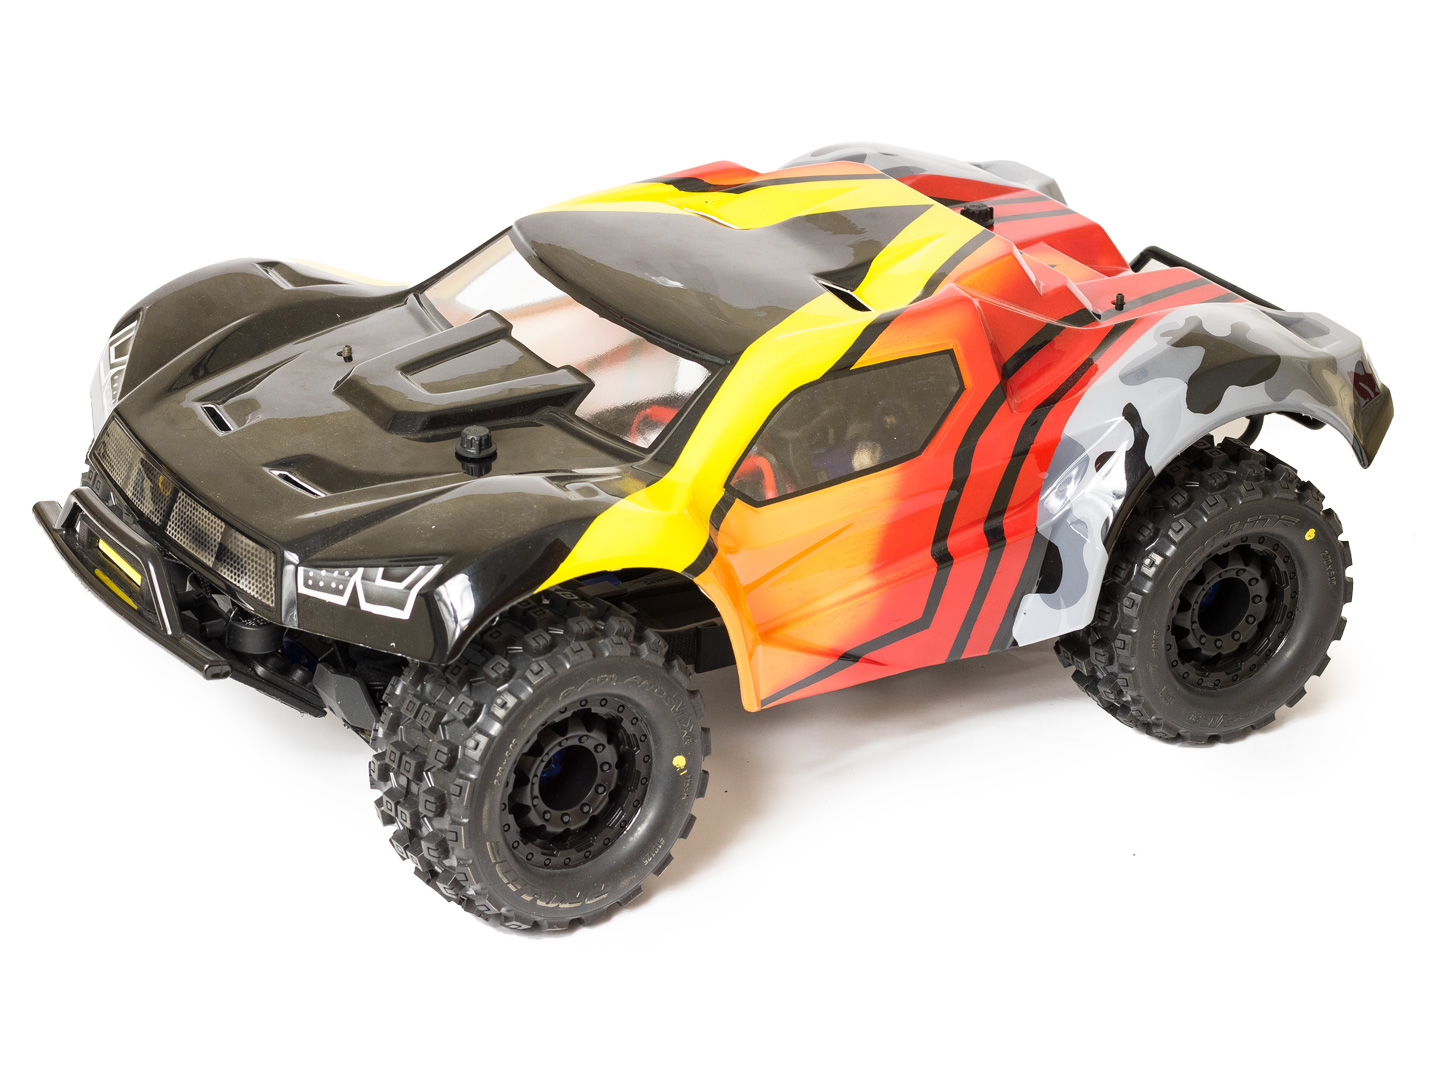 Traxxas Slash 4x4 Pro-Line Monster Fusion